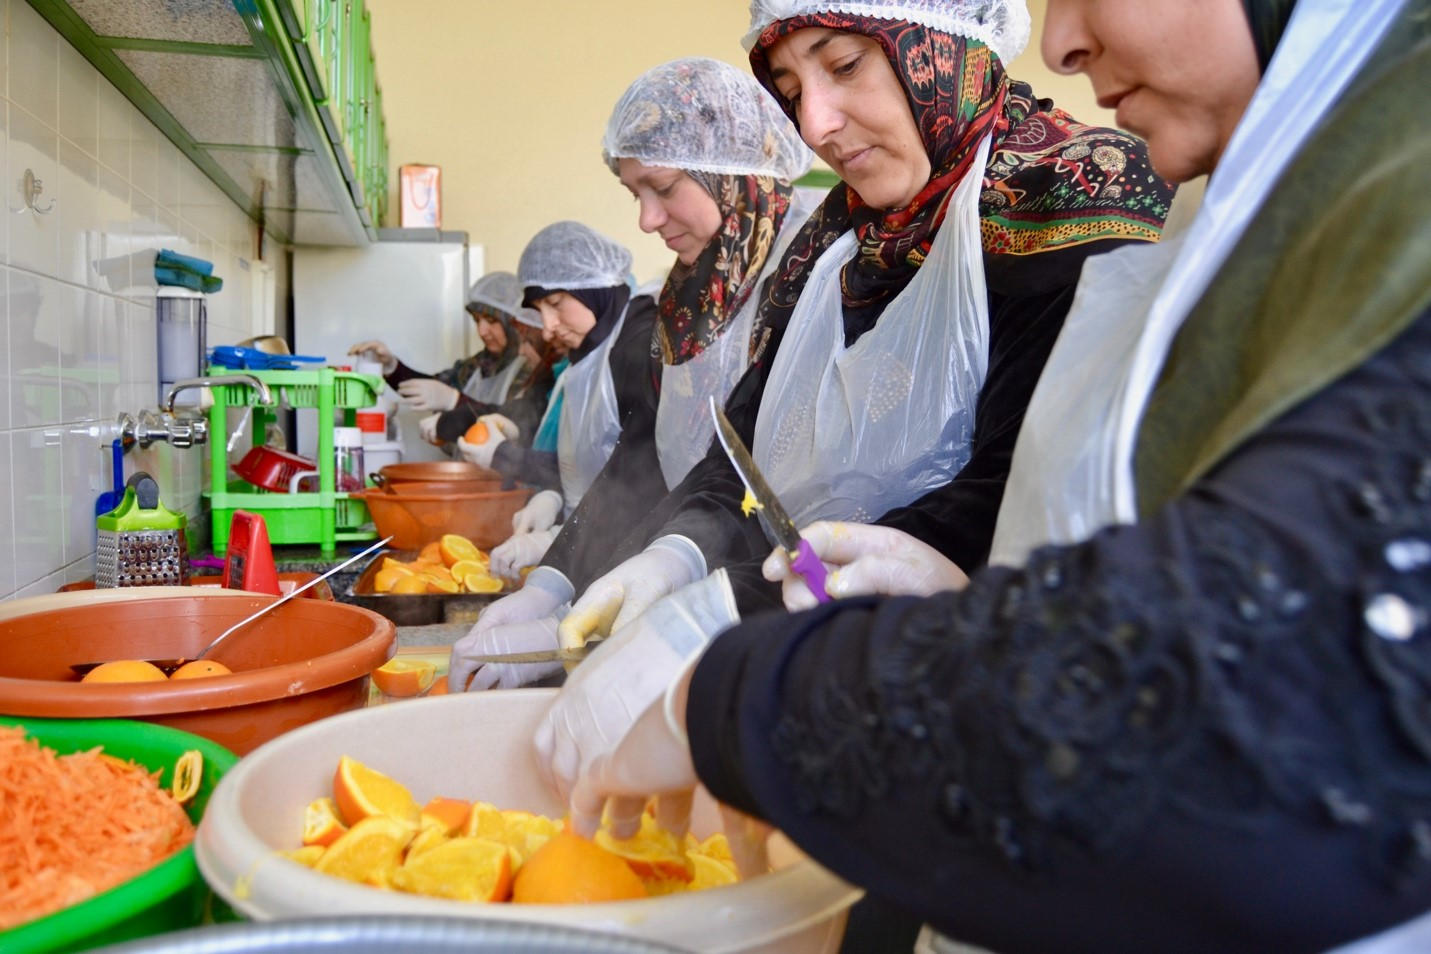 She Innovates: From Southern Italy to Southern Lebanon, a merging of food, culture and women's empowerment